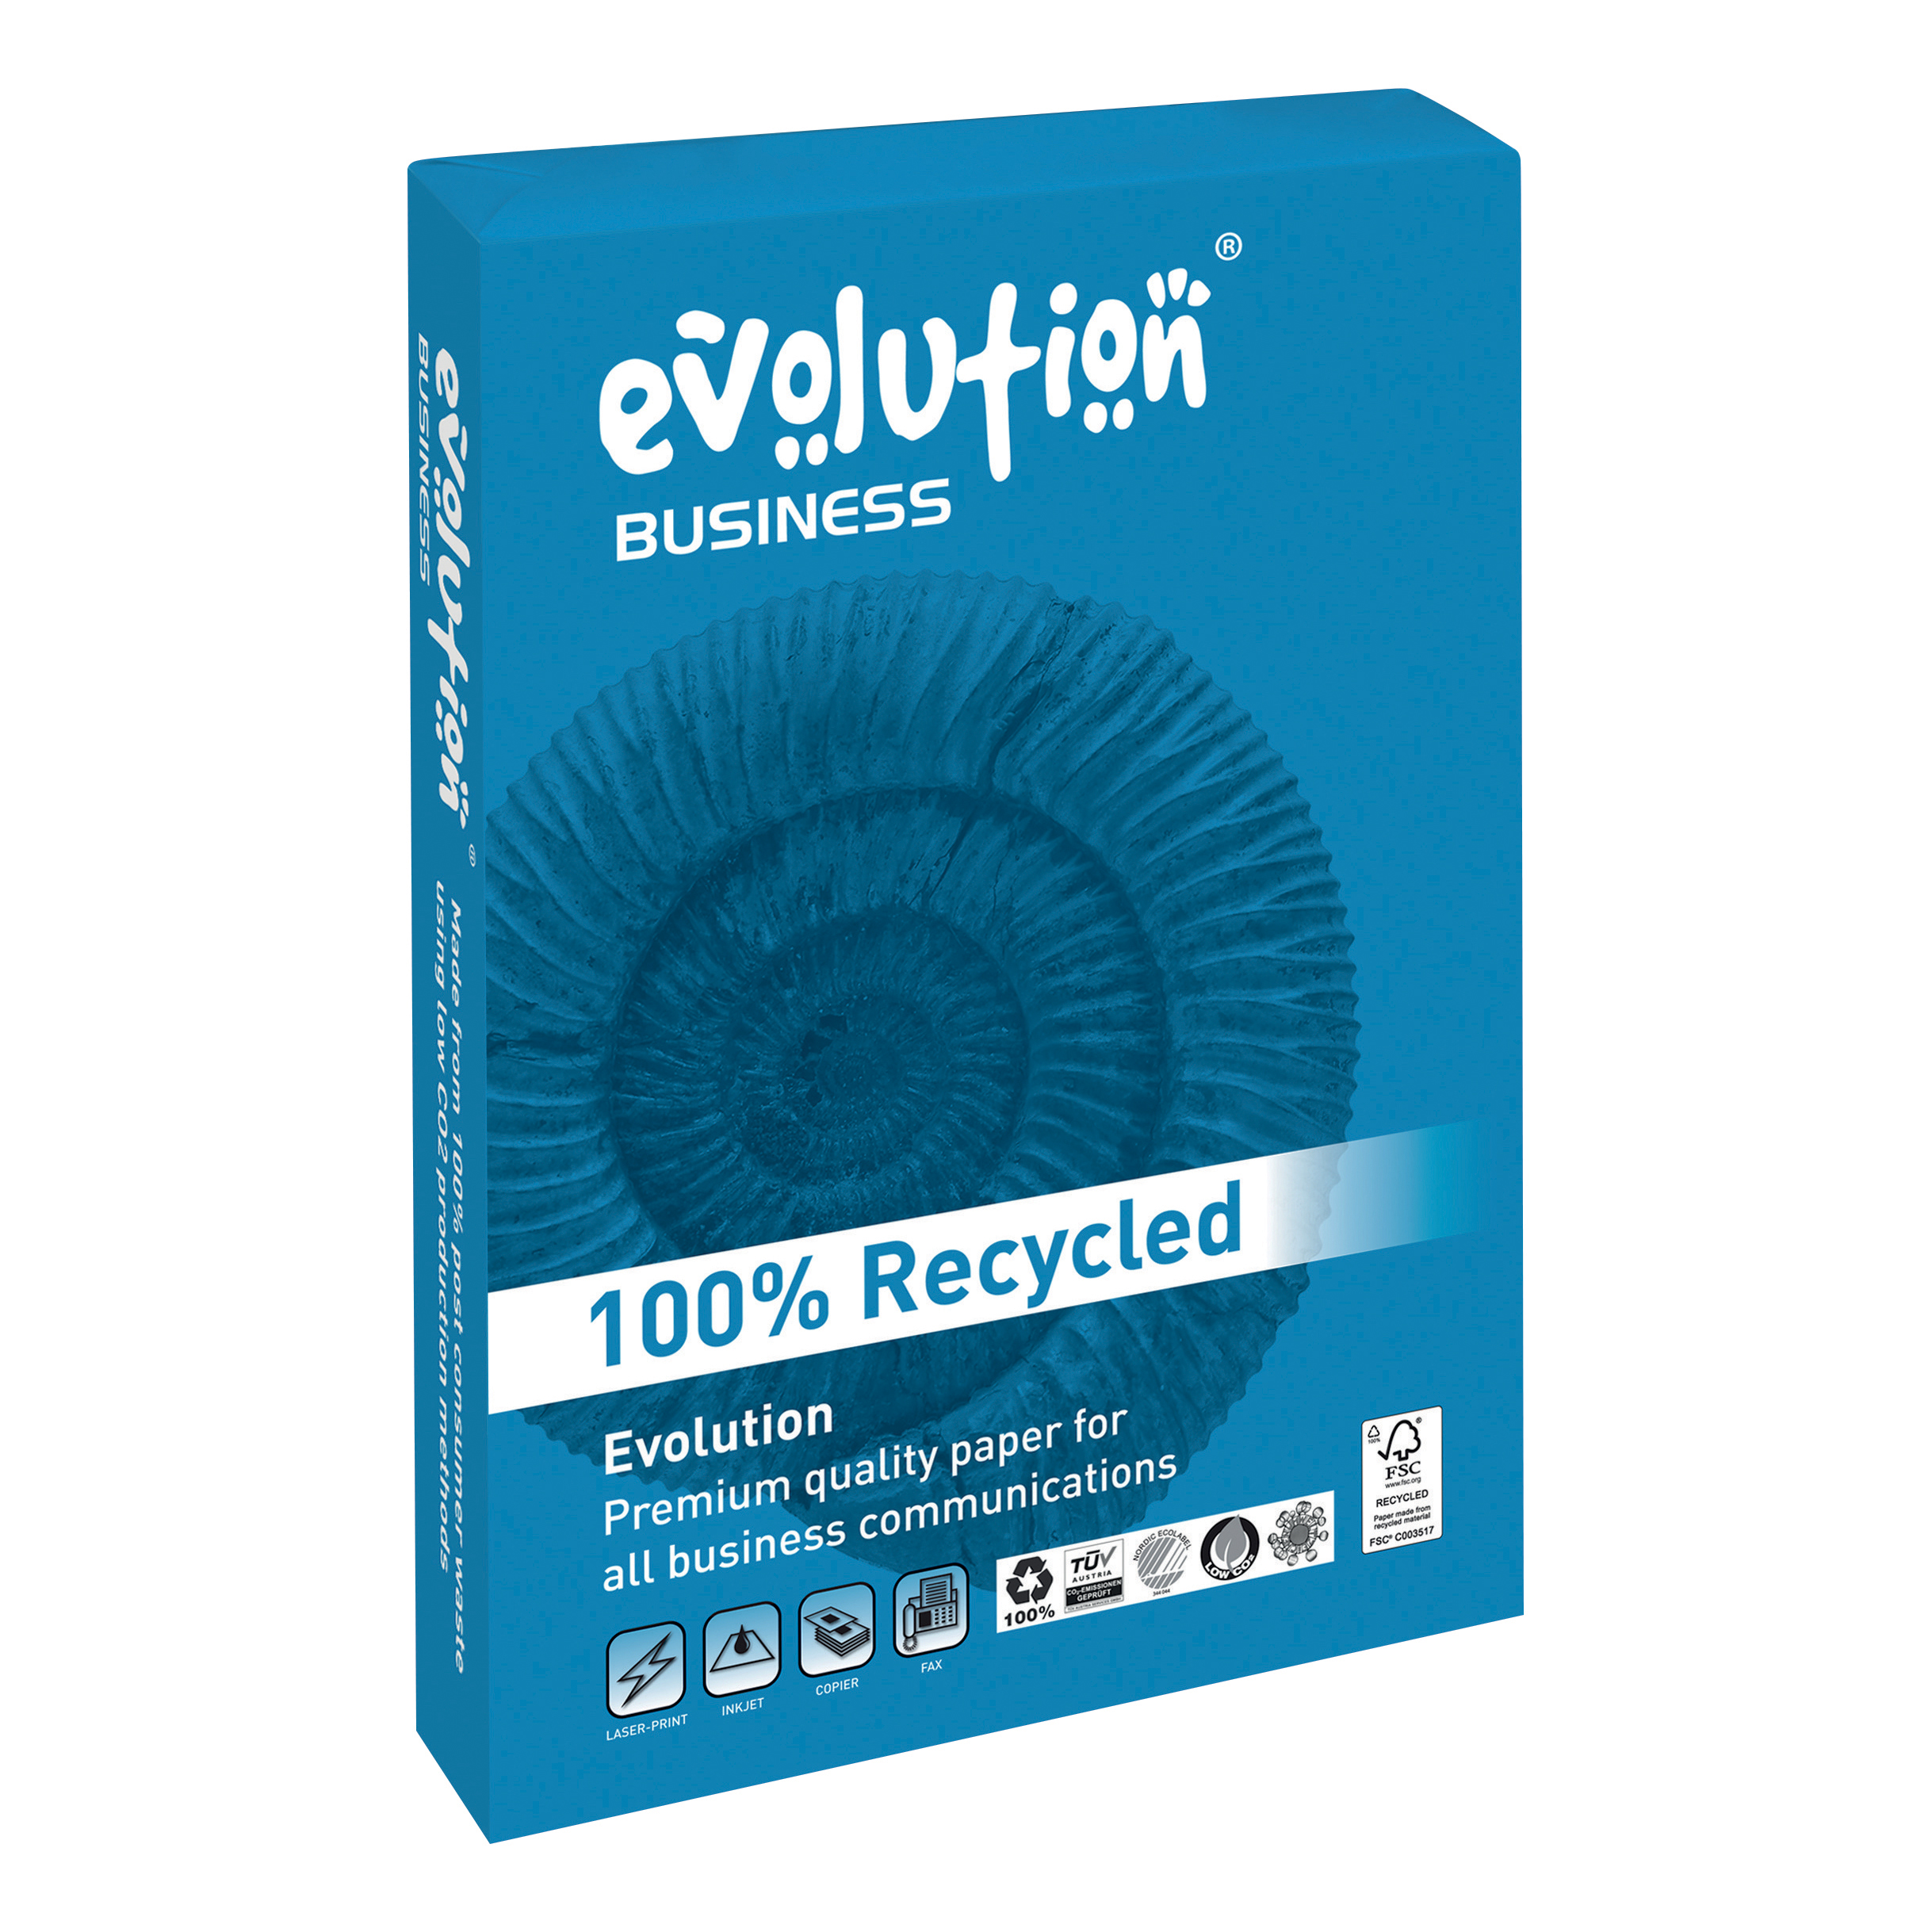 Evolution Business Paper FSC Recycled Ream-wrapped 90gsm A4 White Ref EVBU2109 500 Sheets